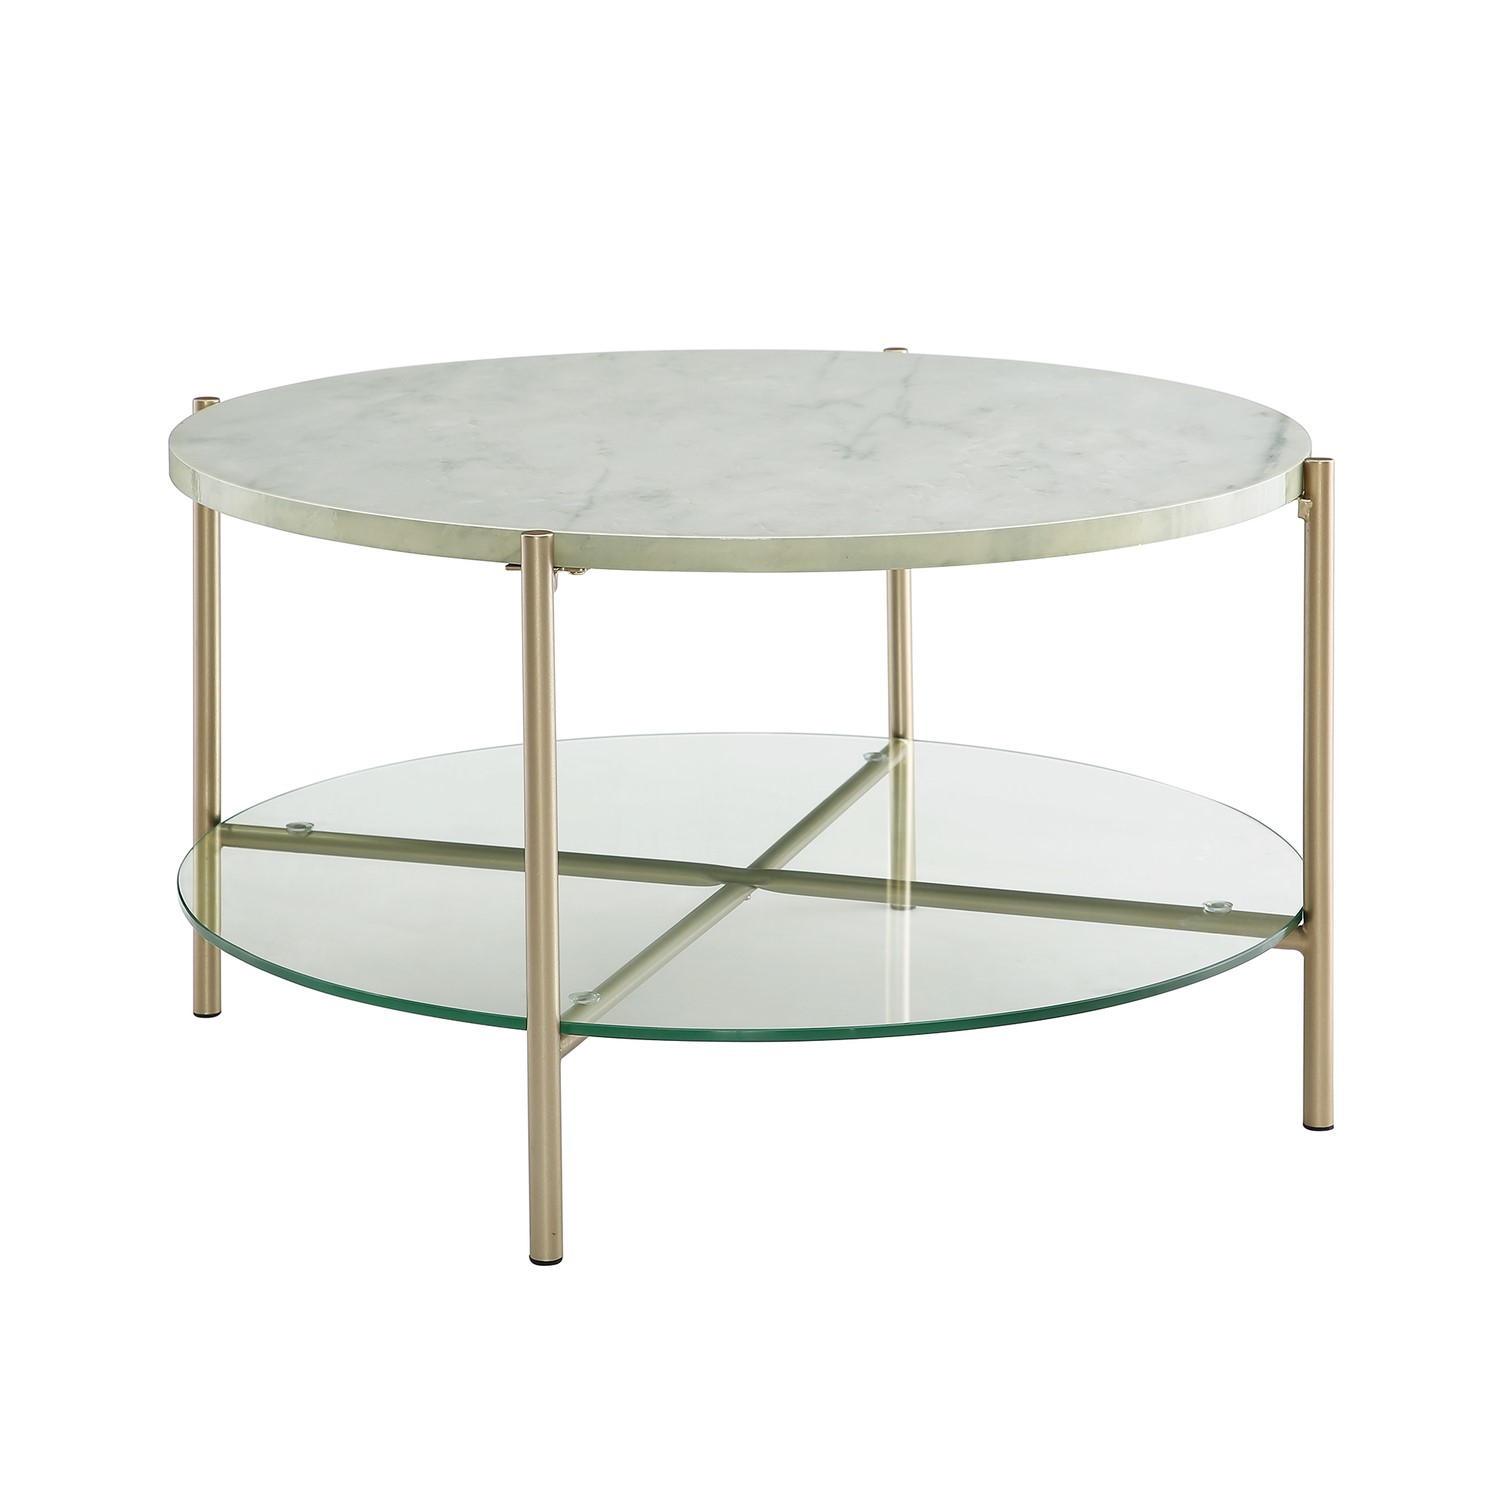 white faux marble round coffee table with gold legs glass shelf